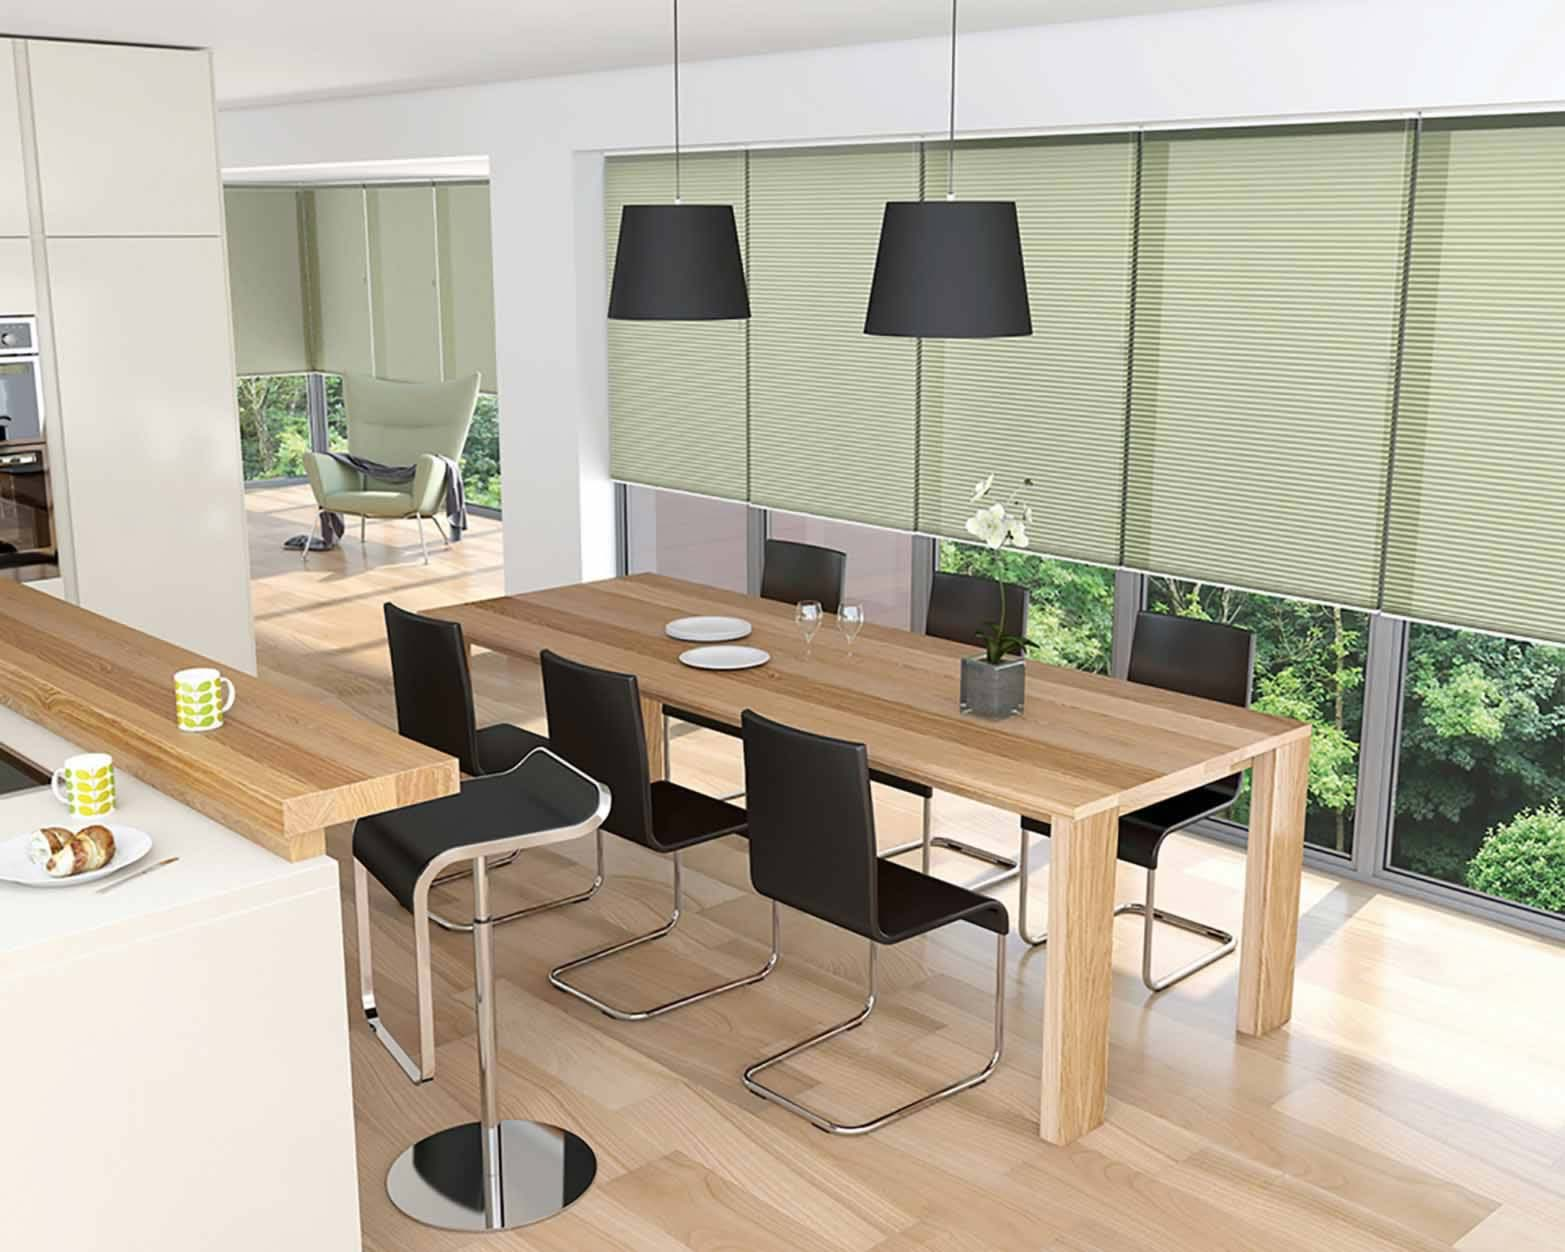 Pleated Blinds - Sola Green